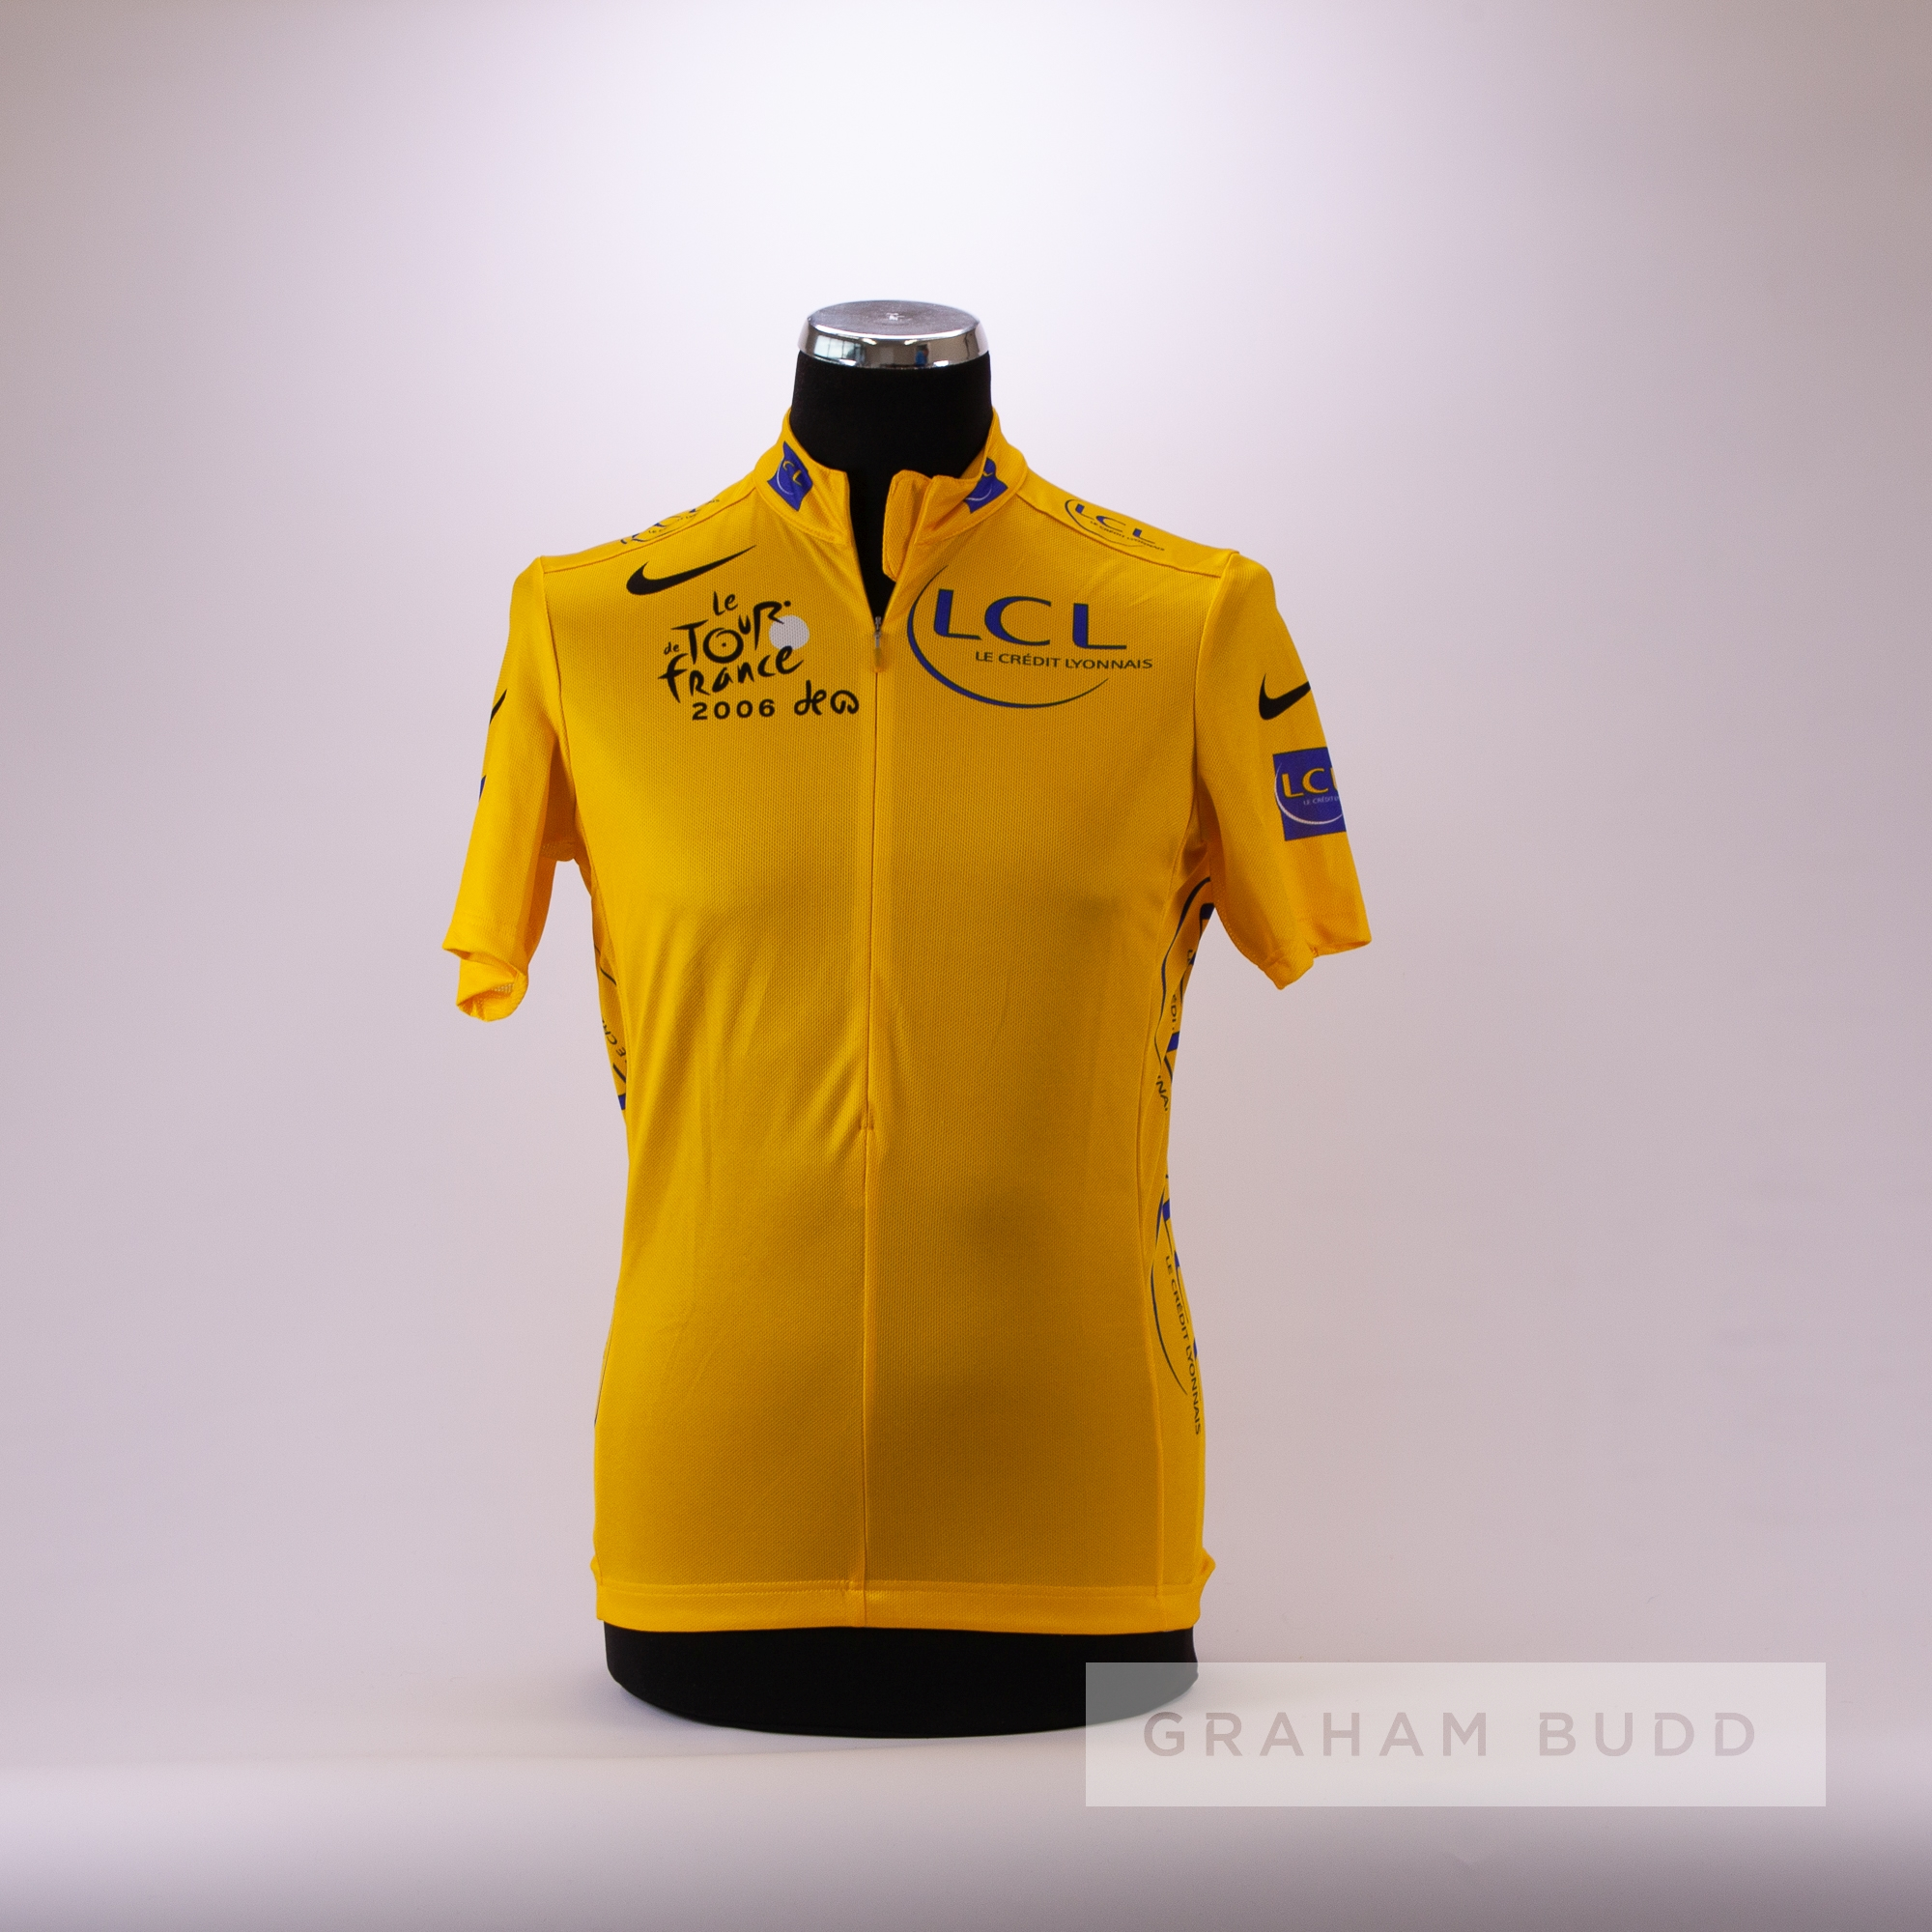 2006 yellow and blue Tour de France Nike LCL Leaders Cycling race jersey, scarce, polyester short- - Image 3 of 4